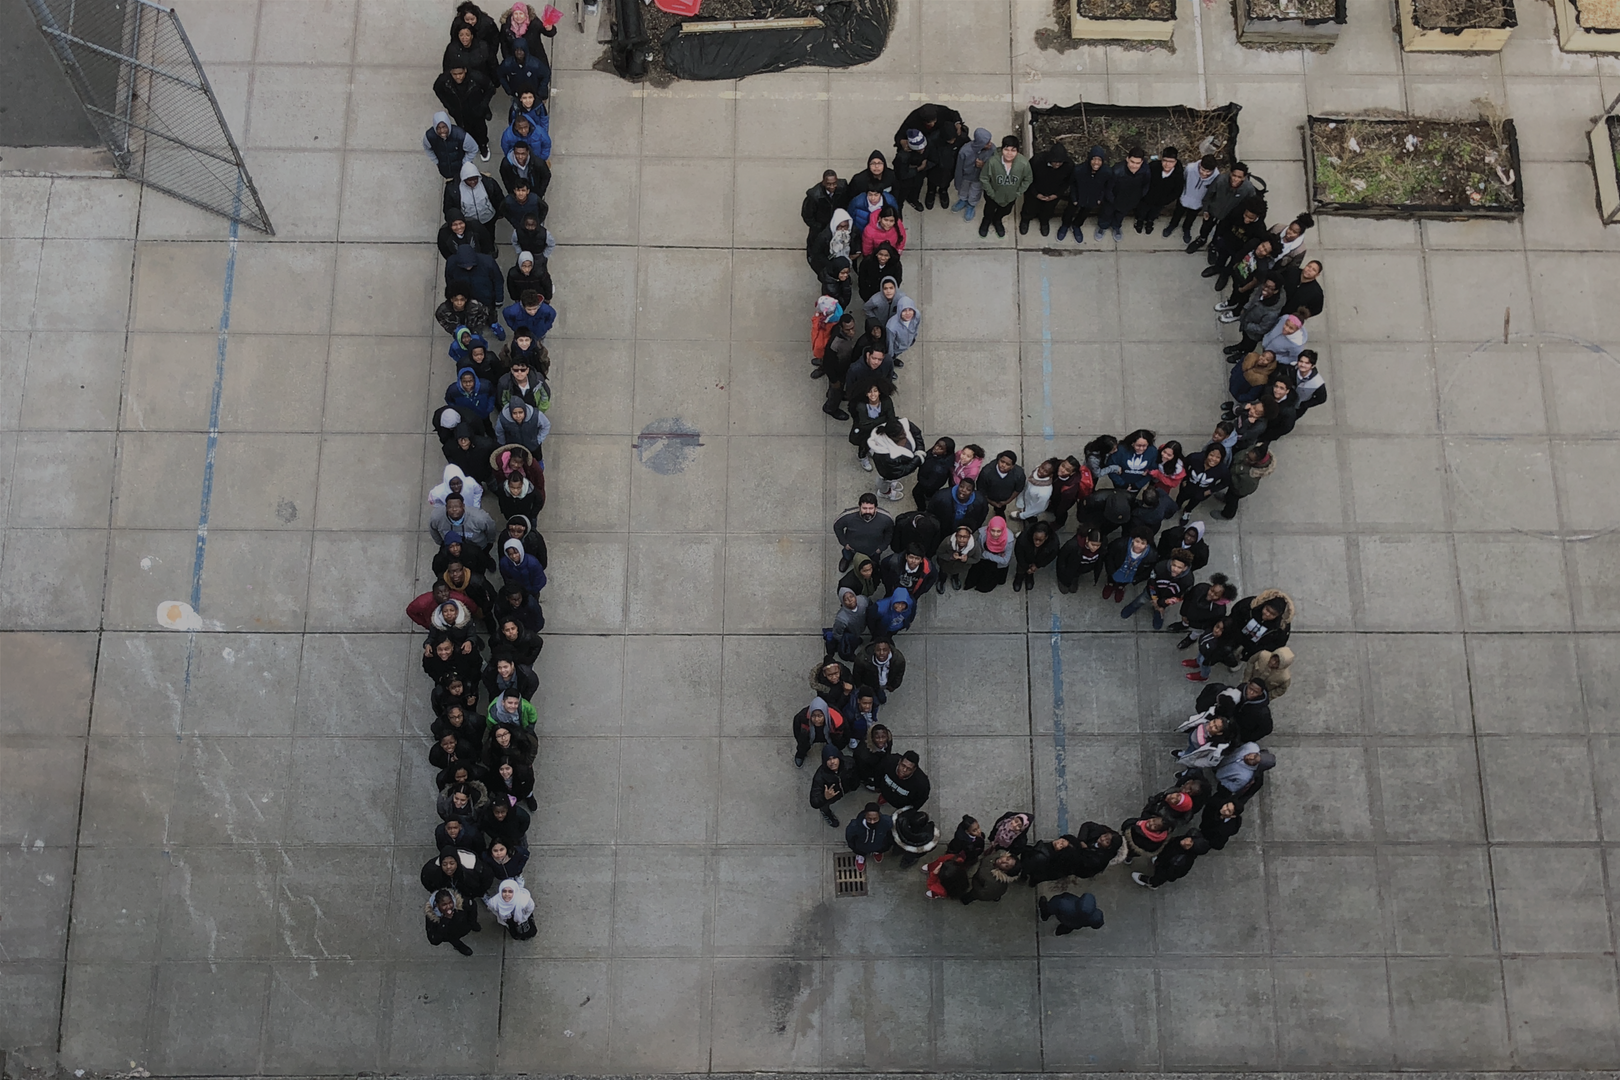 Aerial shot of students in number 18 formation